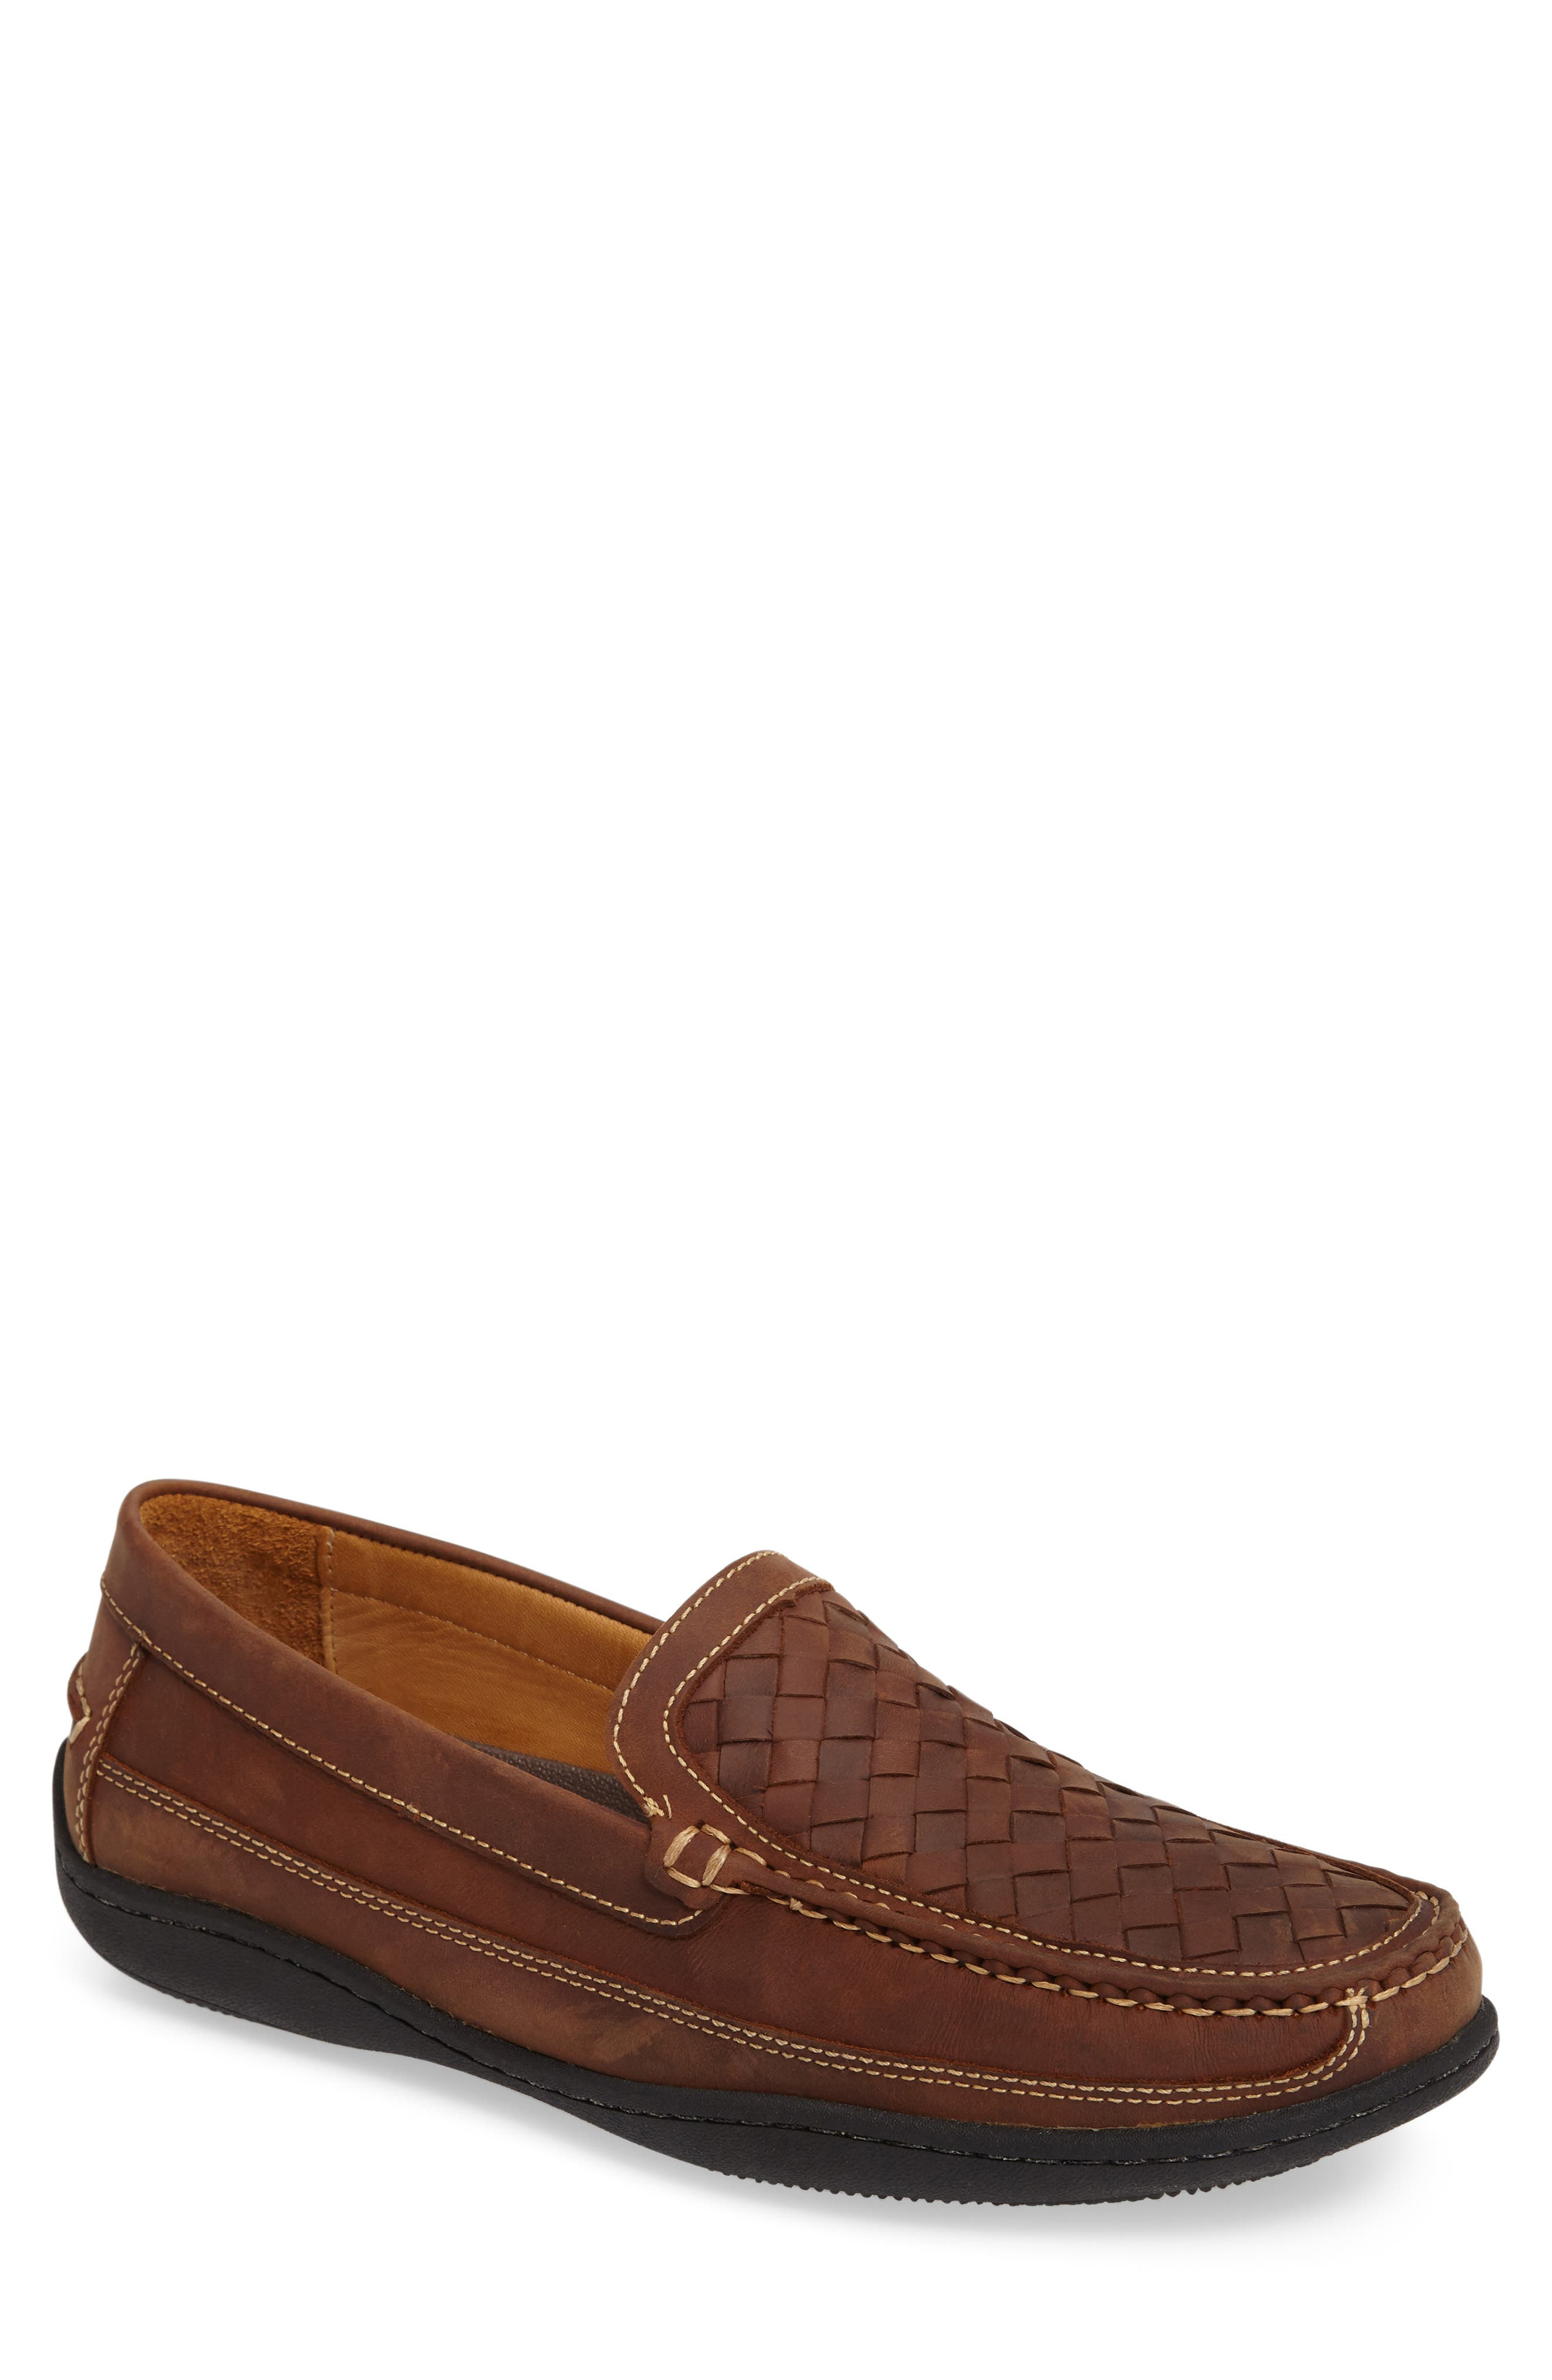 JOHNSTON & MURPHY, Fowler Woven Loafer, Main thumbnail 1, color, TAN LEATHER